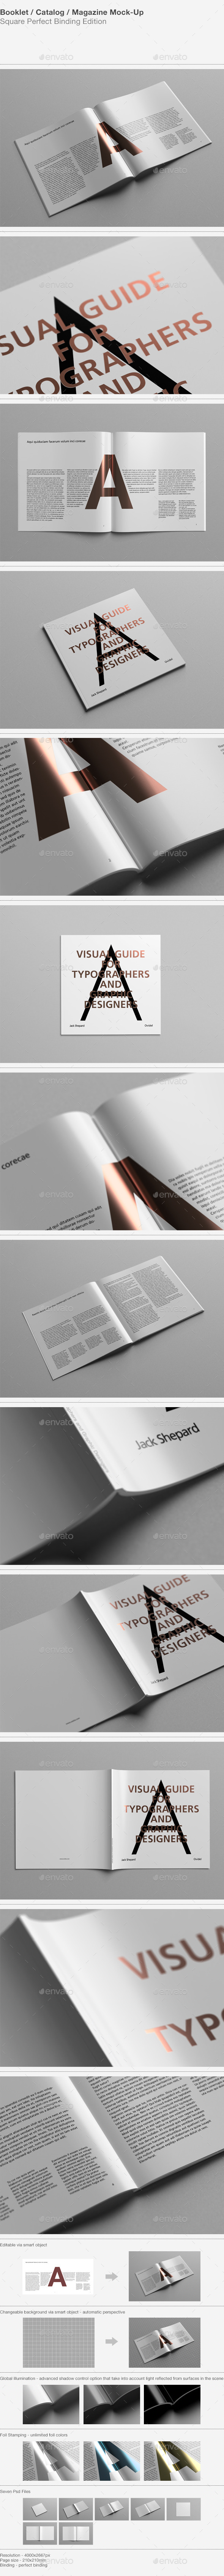 Square Catalog / Magazine Mock-Up - Magazines Print